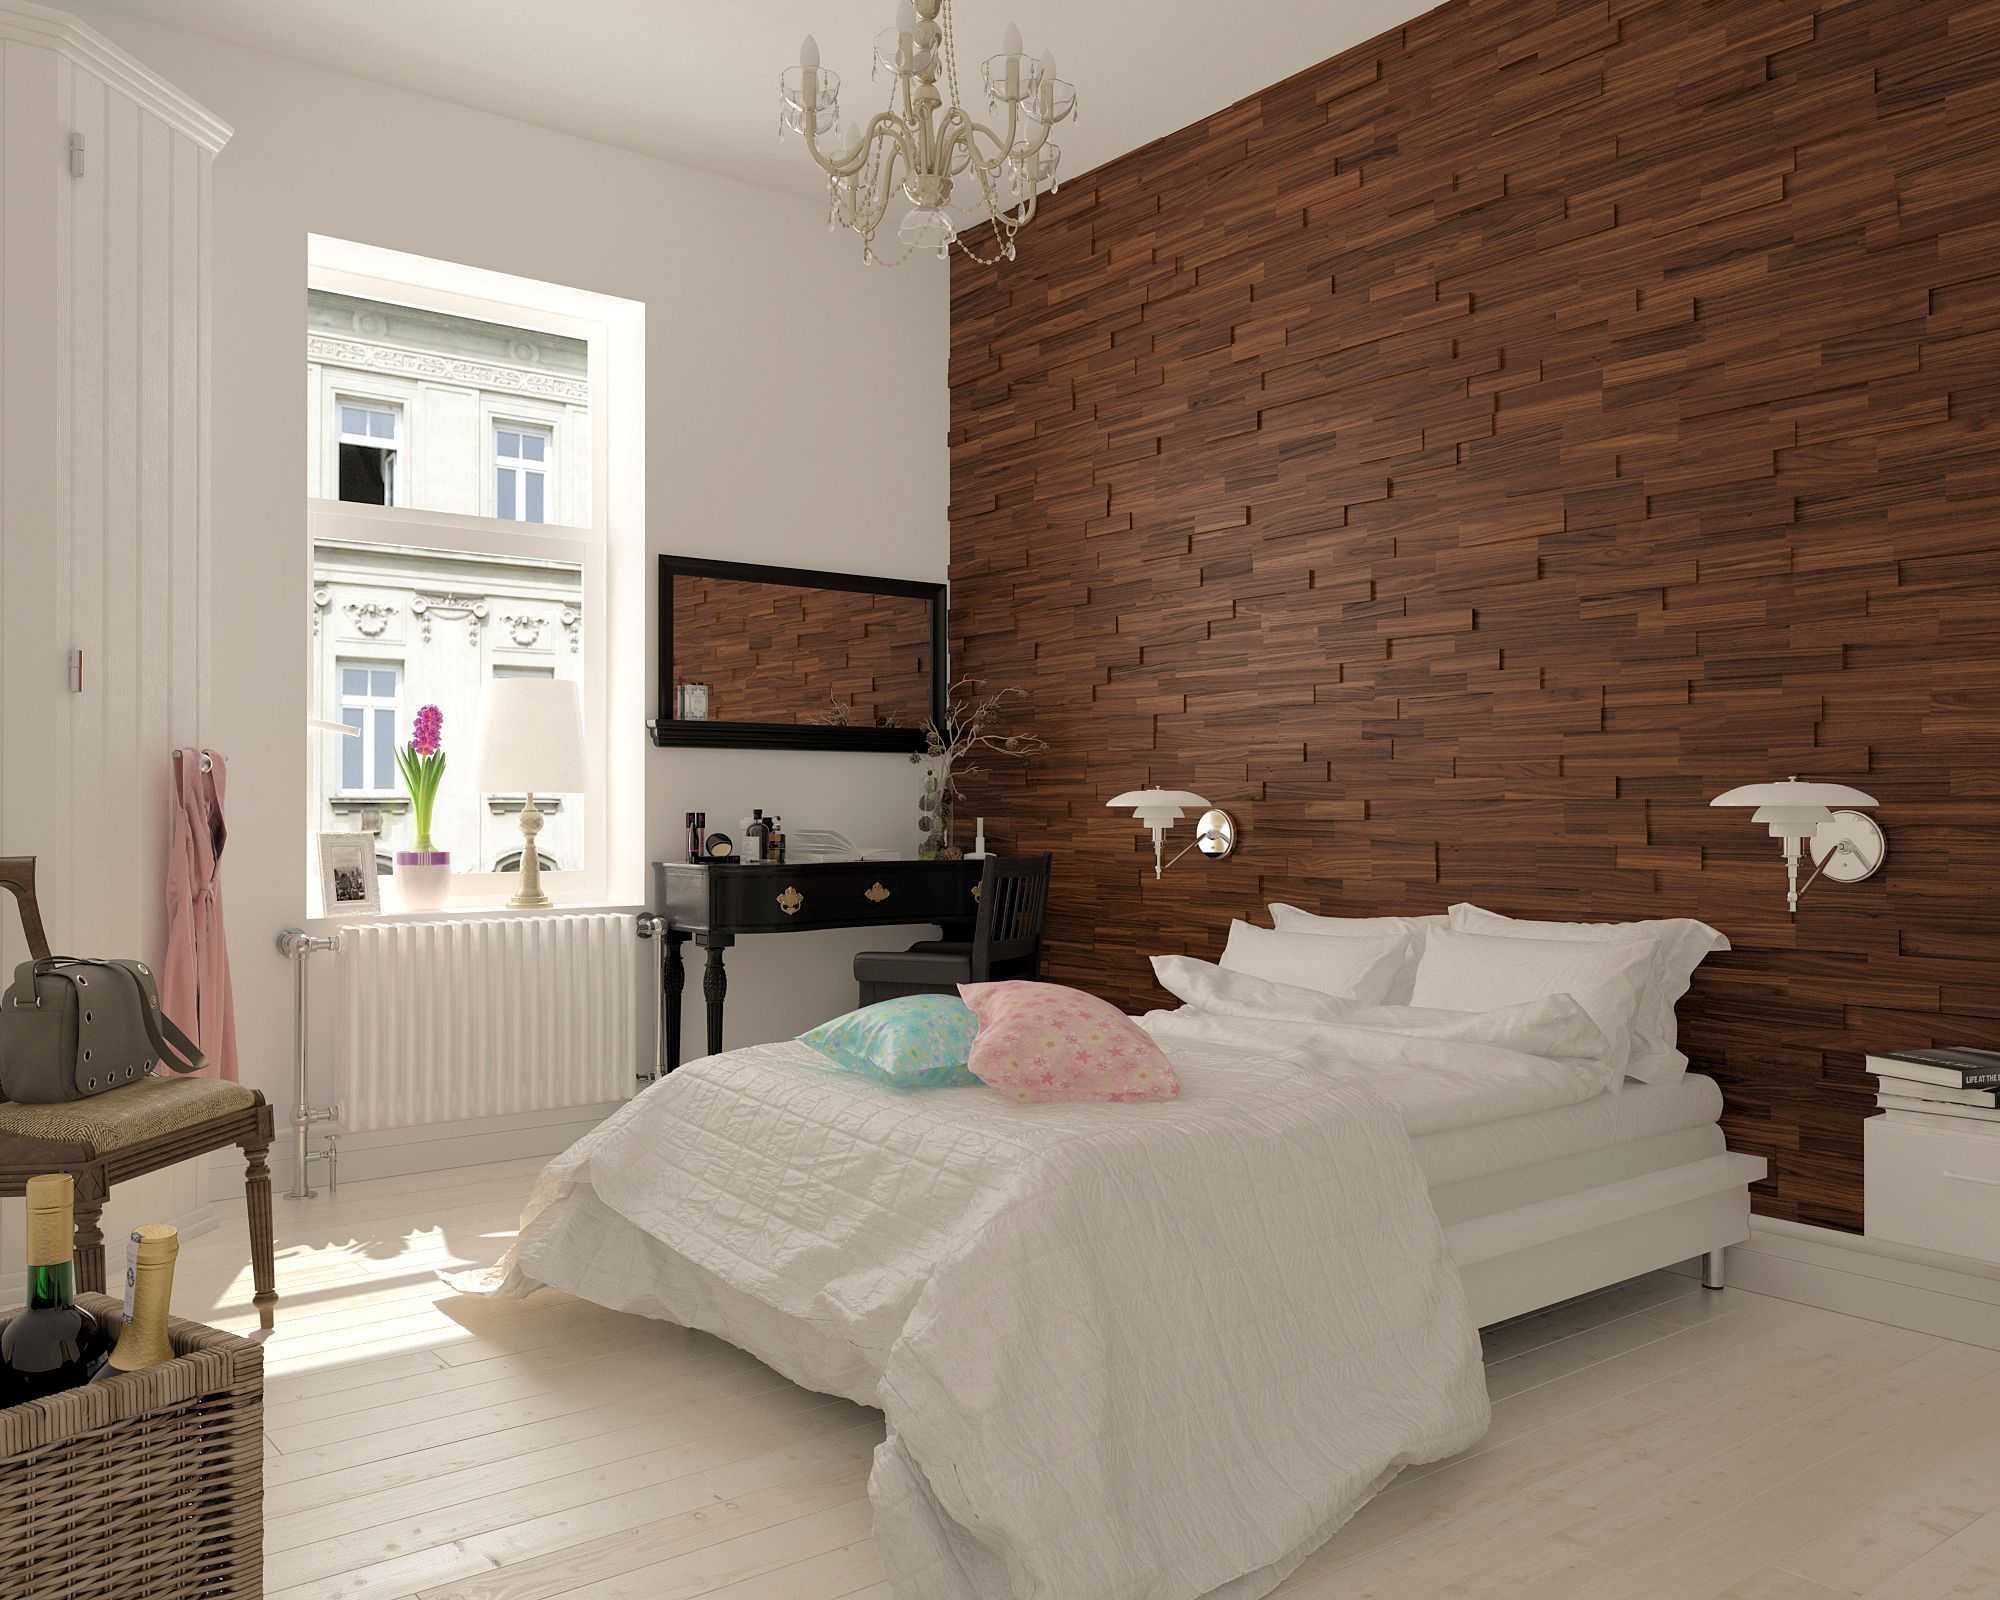 A new hot trend in wall design, 4D Mosaic Wood Panels made of real